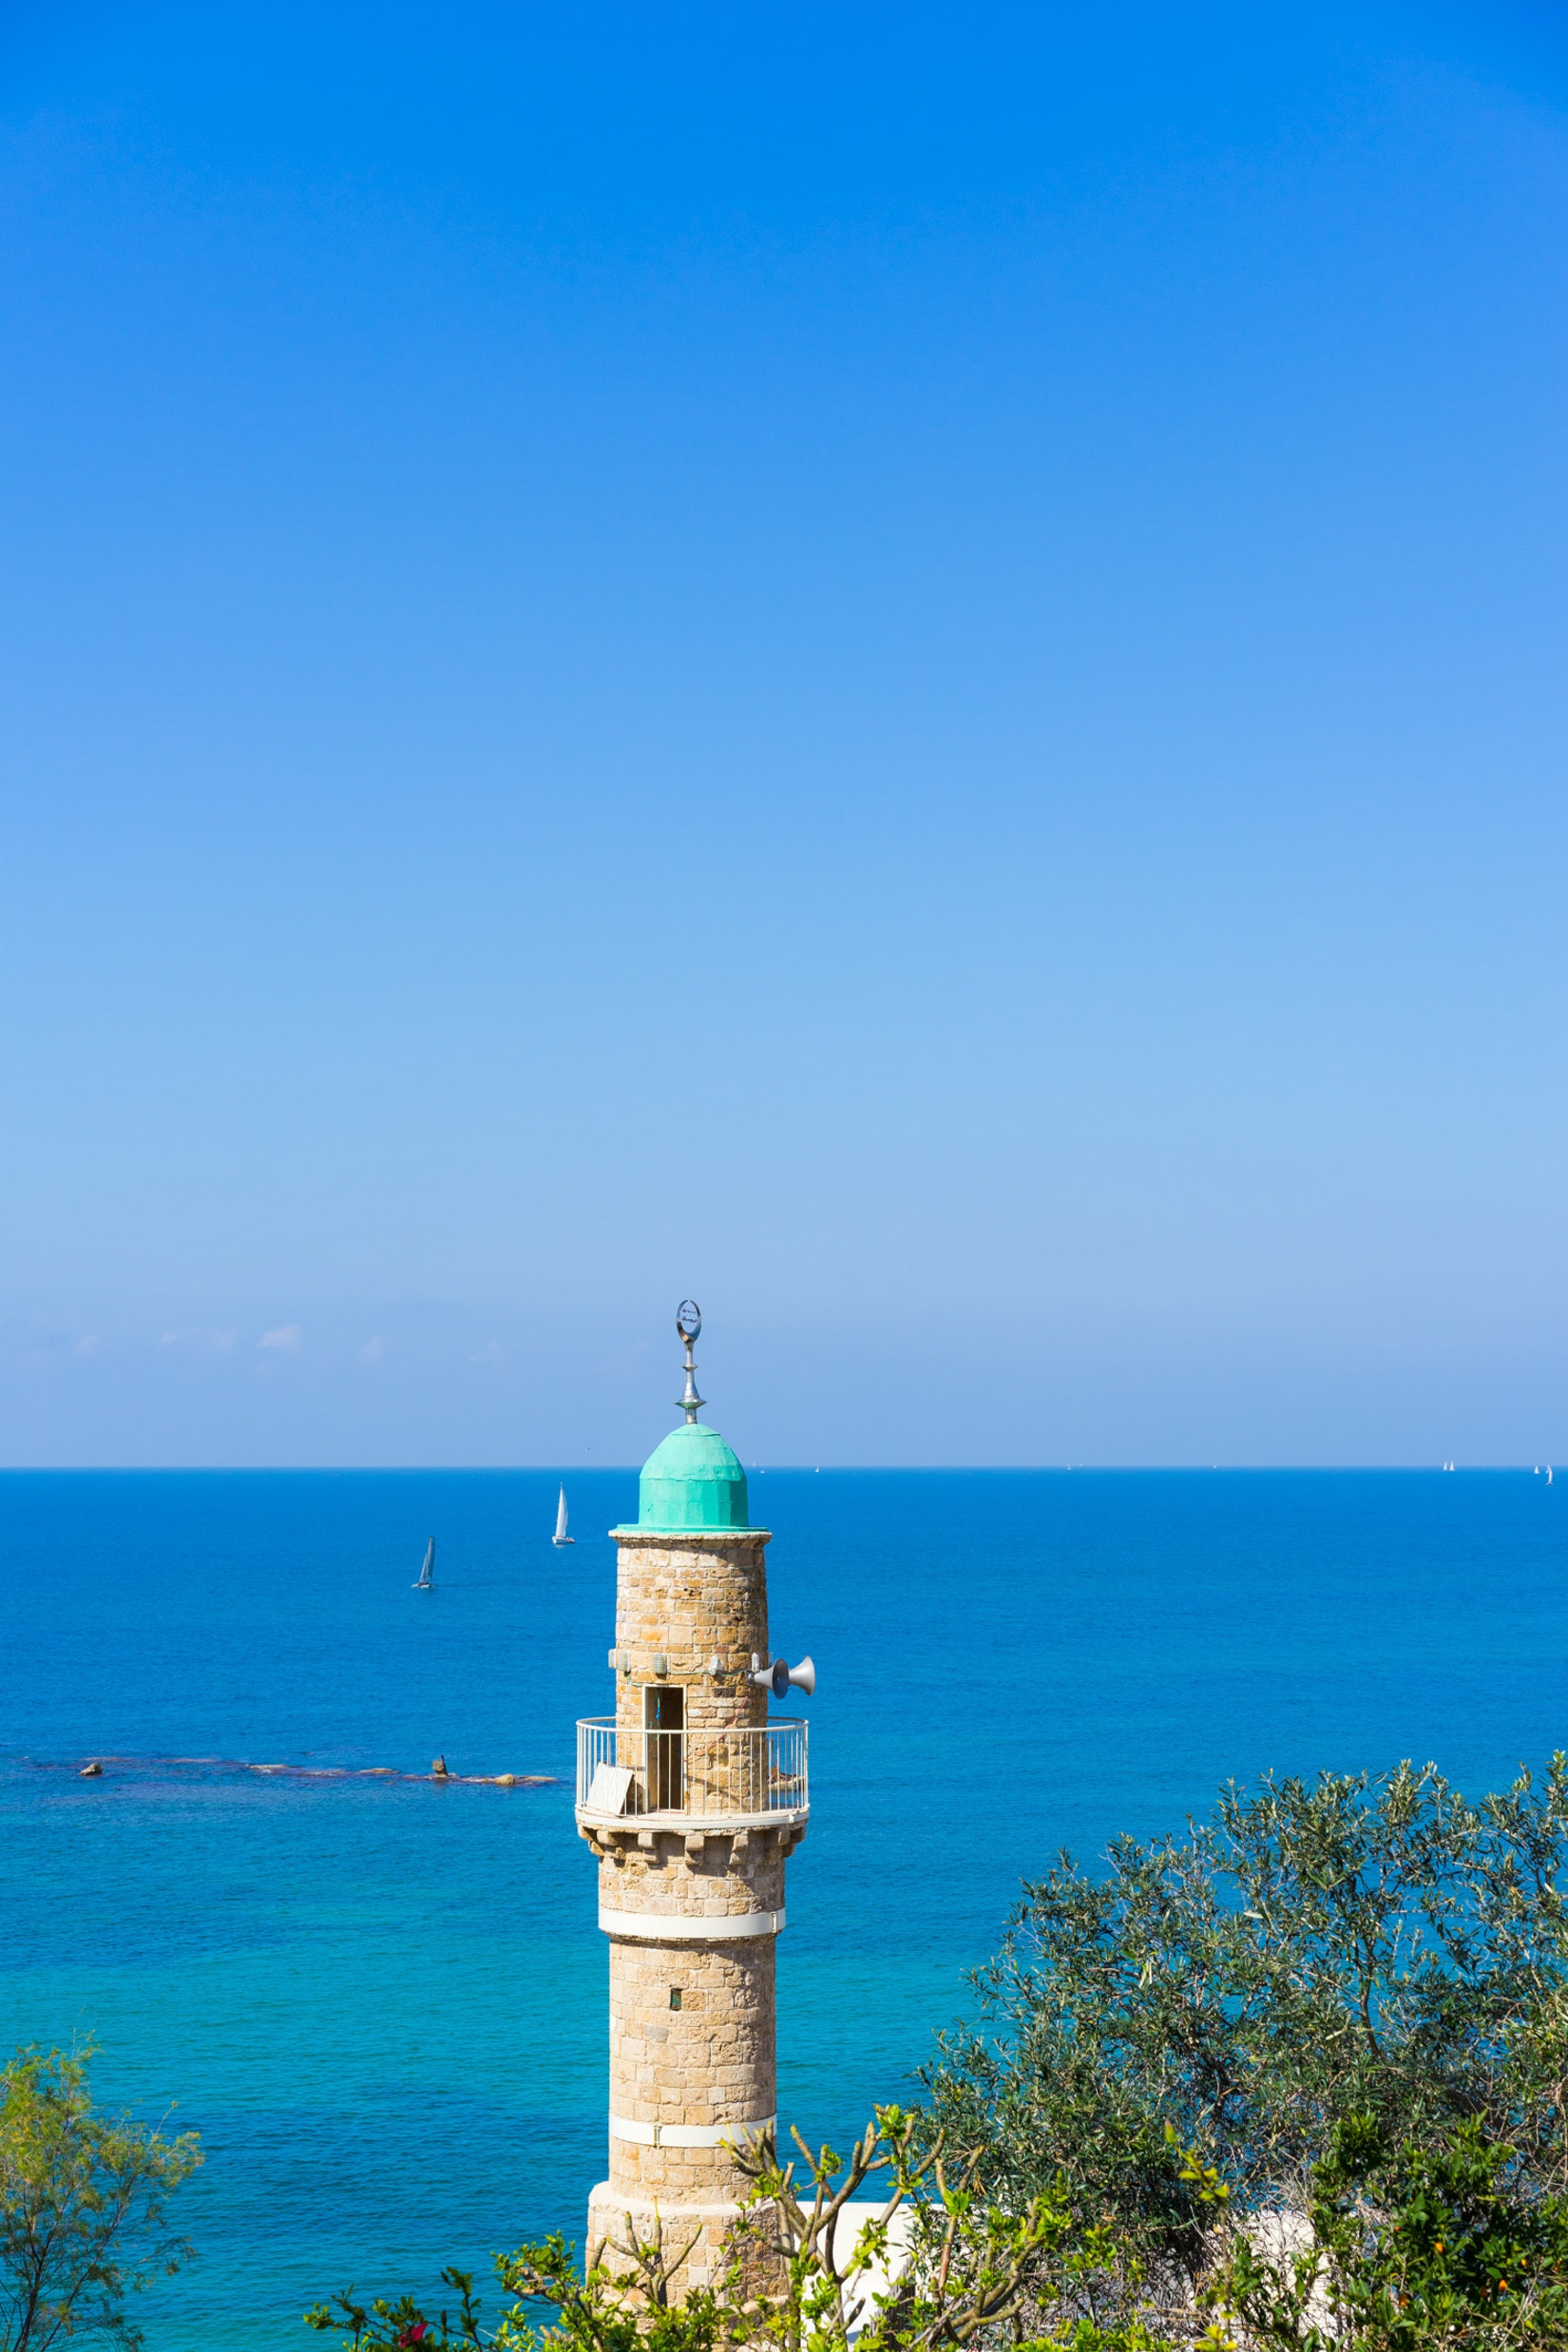 The tower of a mosque in Jaffa, Israel